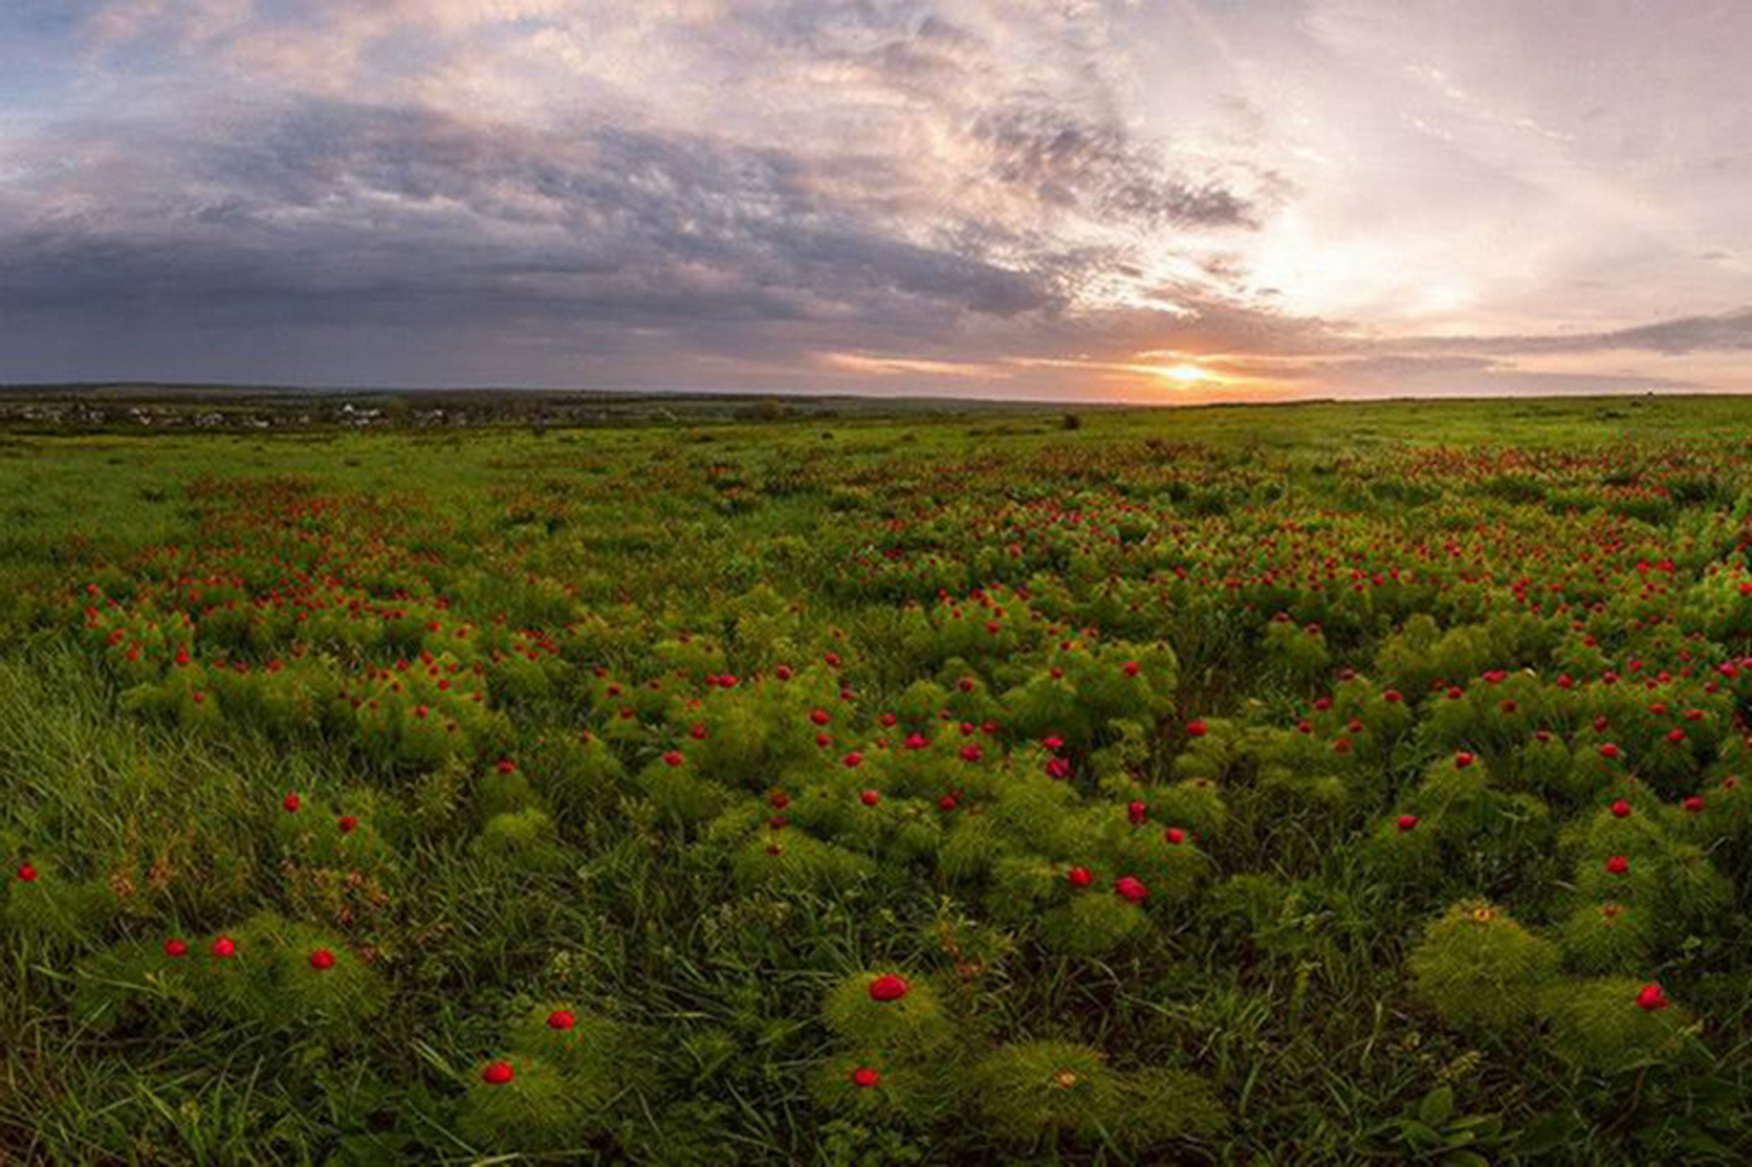 The steppe is lit by the red. Dmitry Balkhovitin